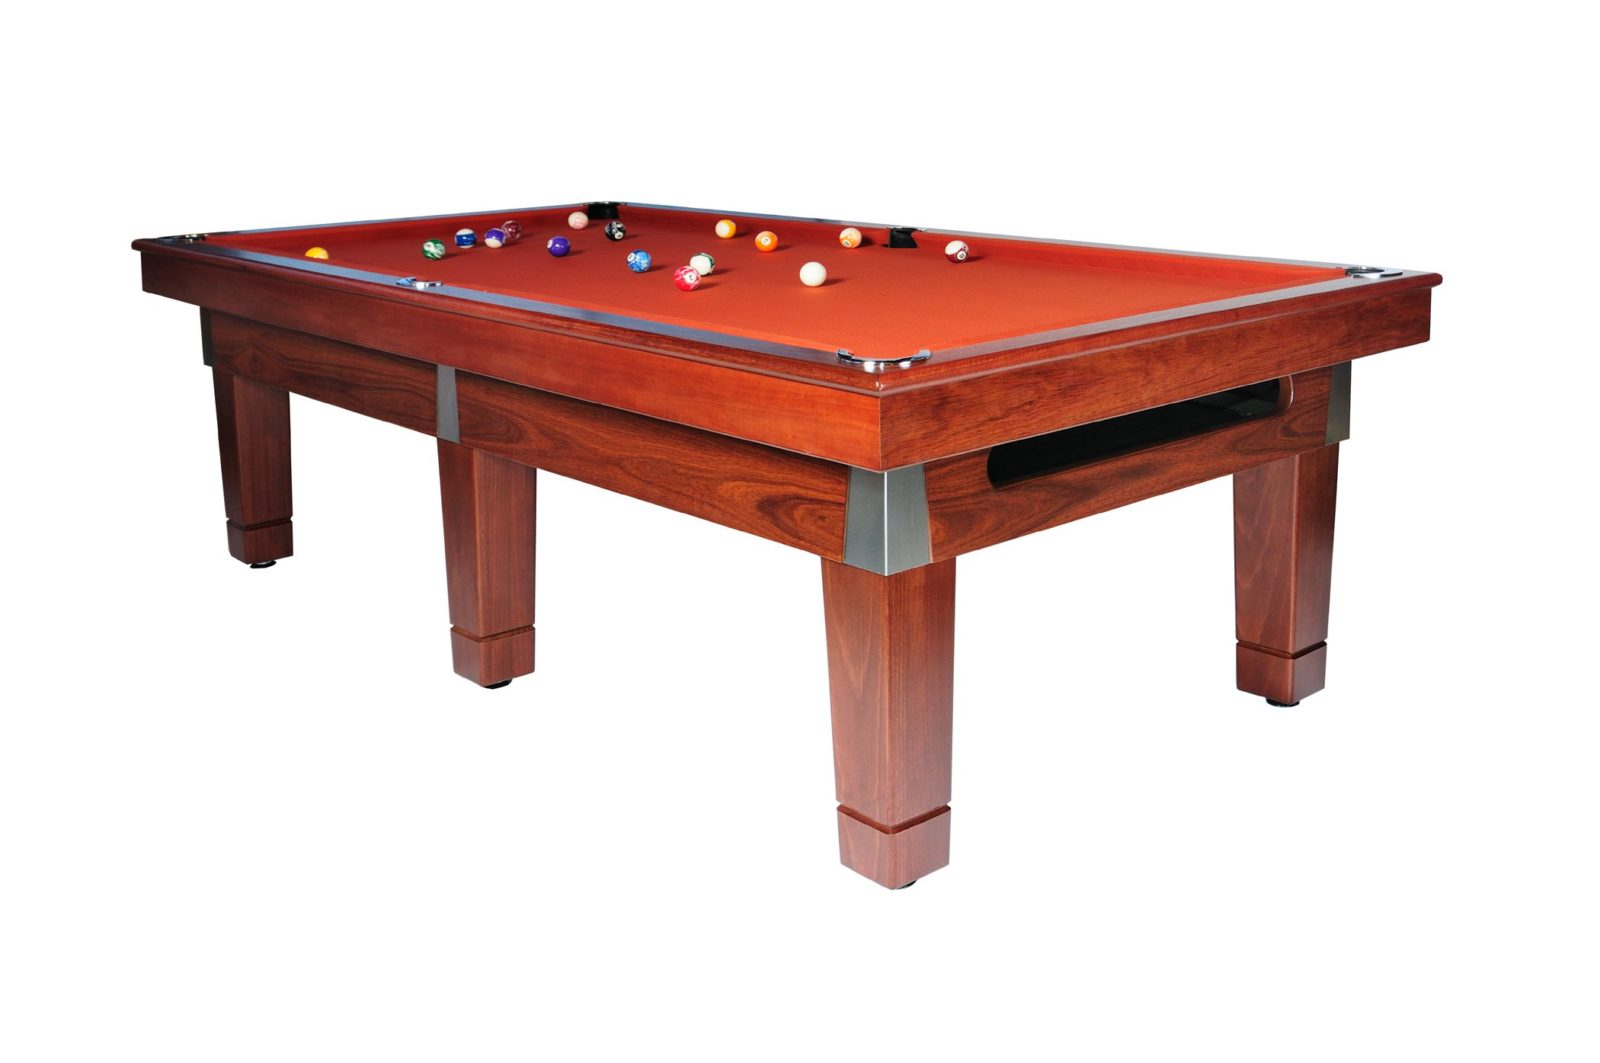 Room Size Guide For Snooker Table